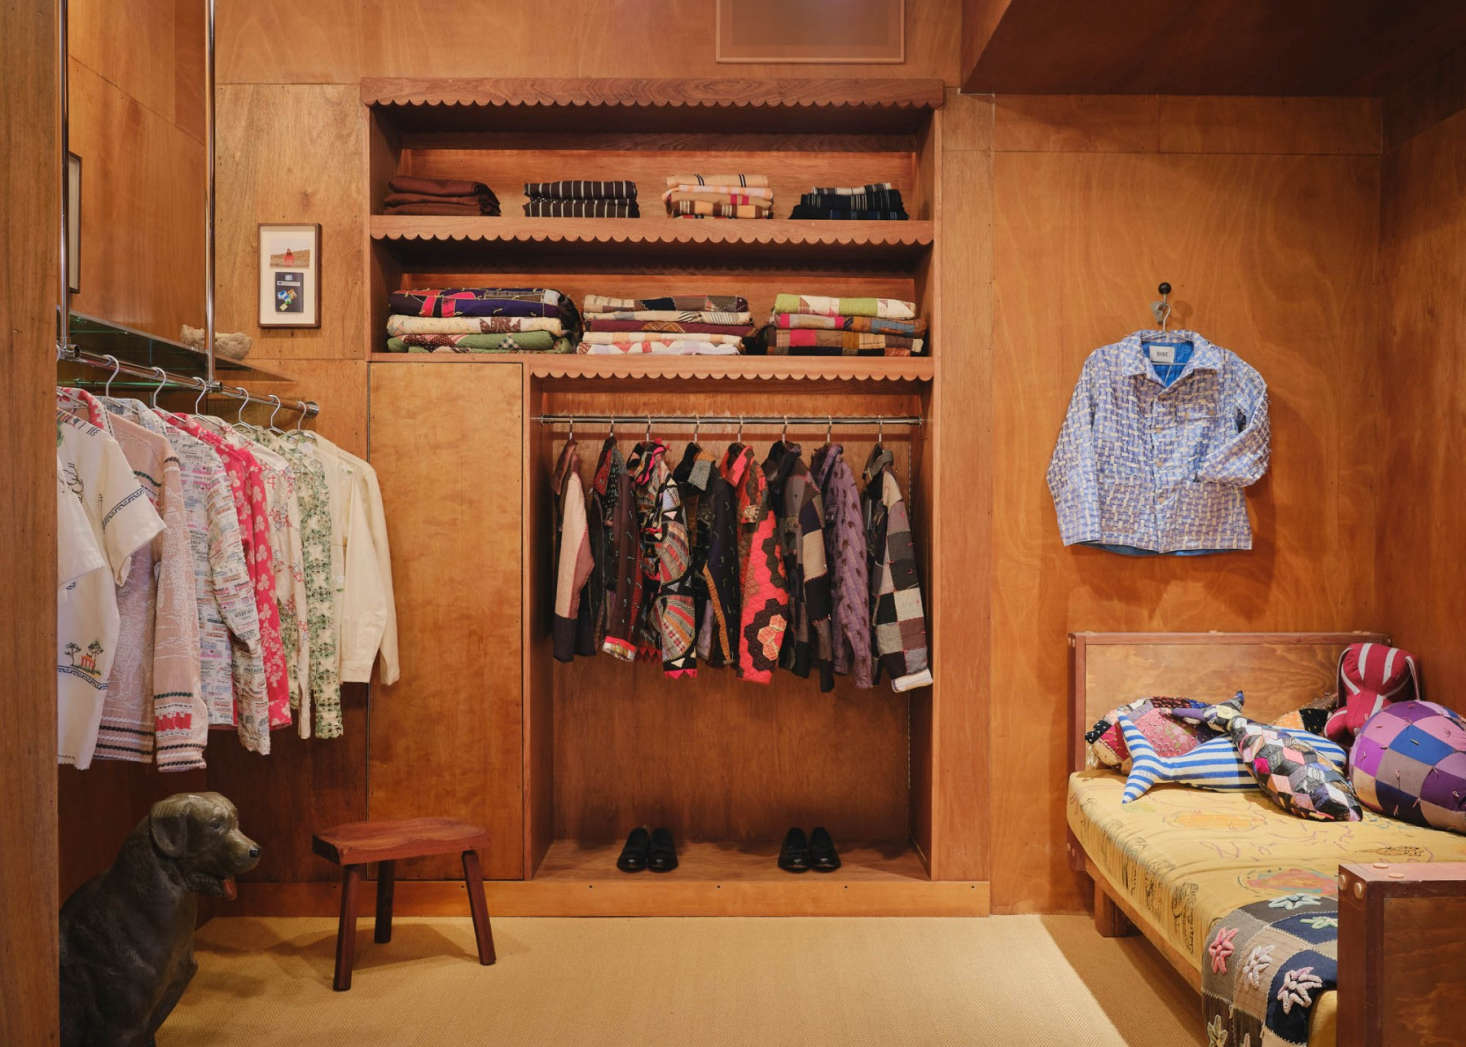 The Bode boutique at 58 Hester Street in NYC&#8